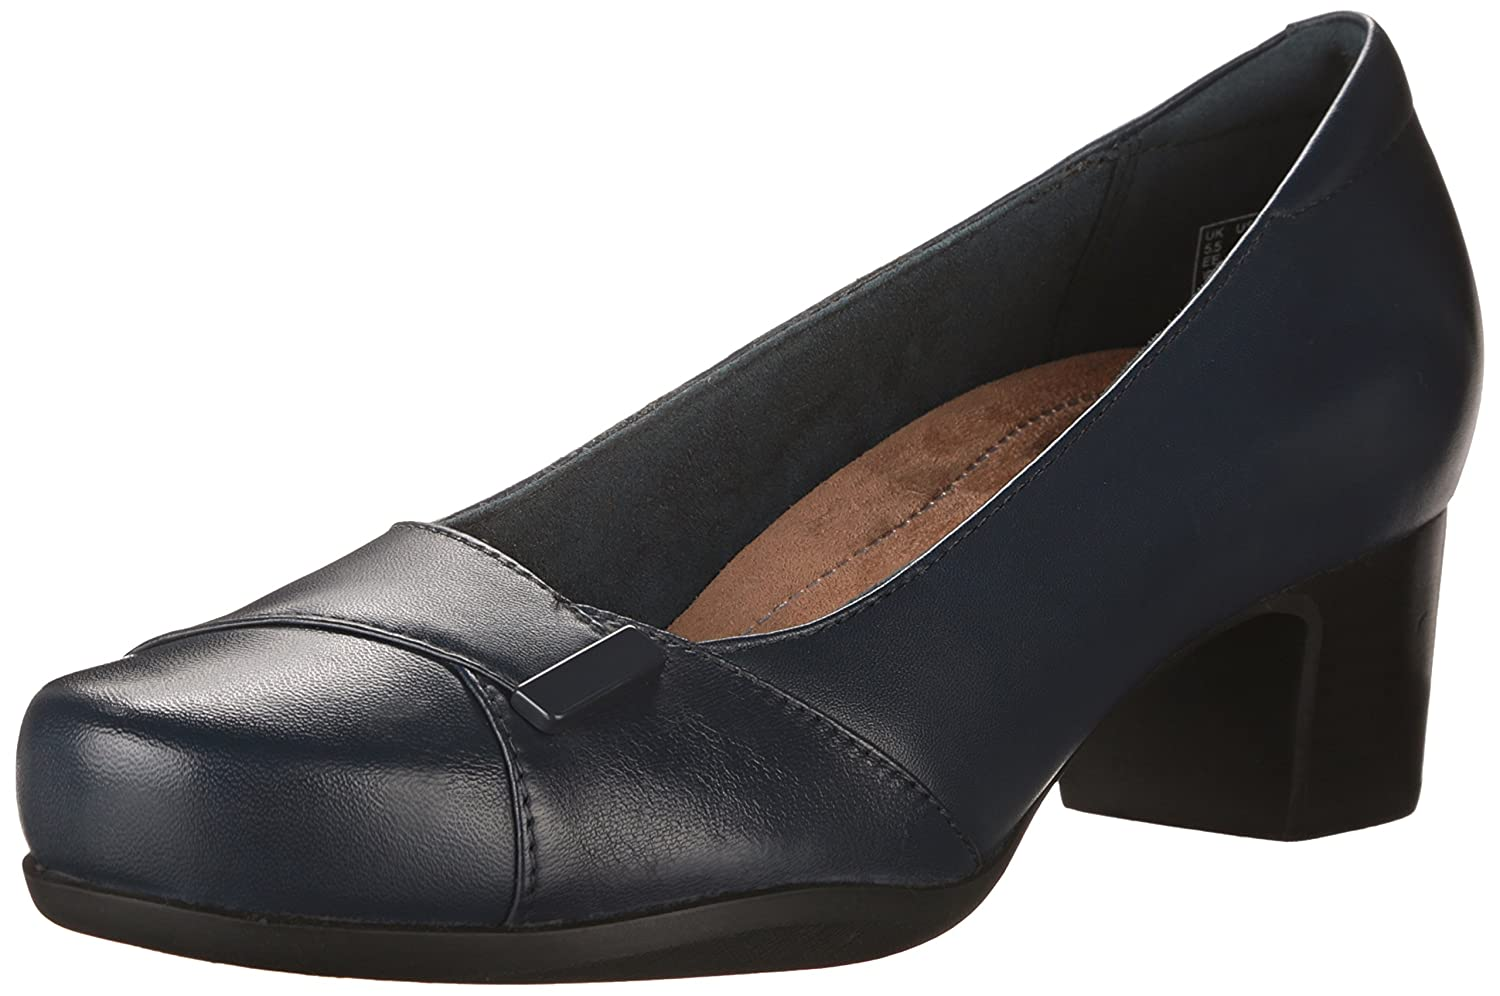 CLARKS Women's Rosalyn Belle B00T3IRGS4 12 2A - Narrow|Navy Leather